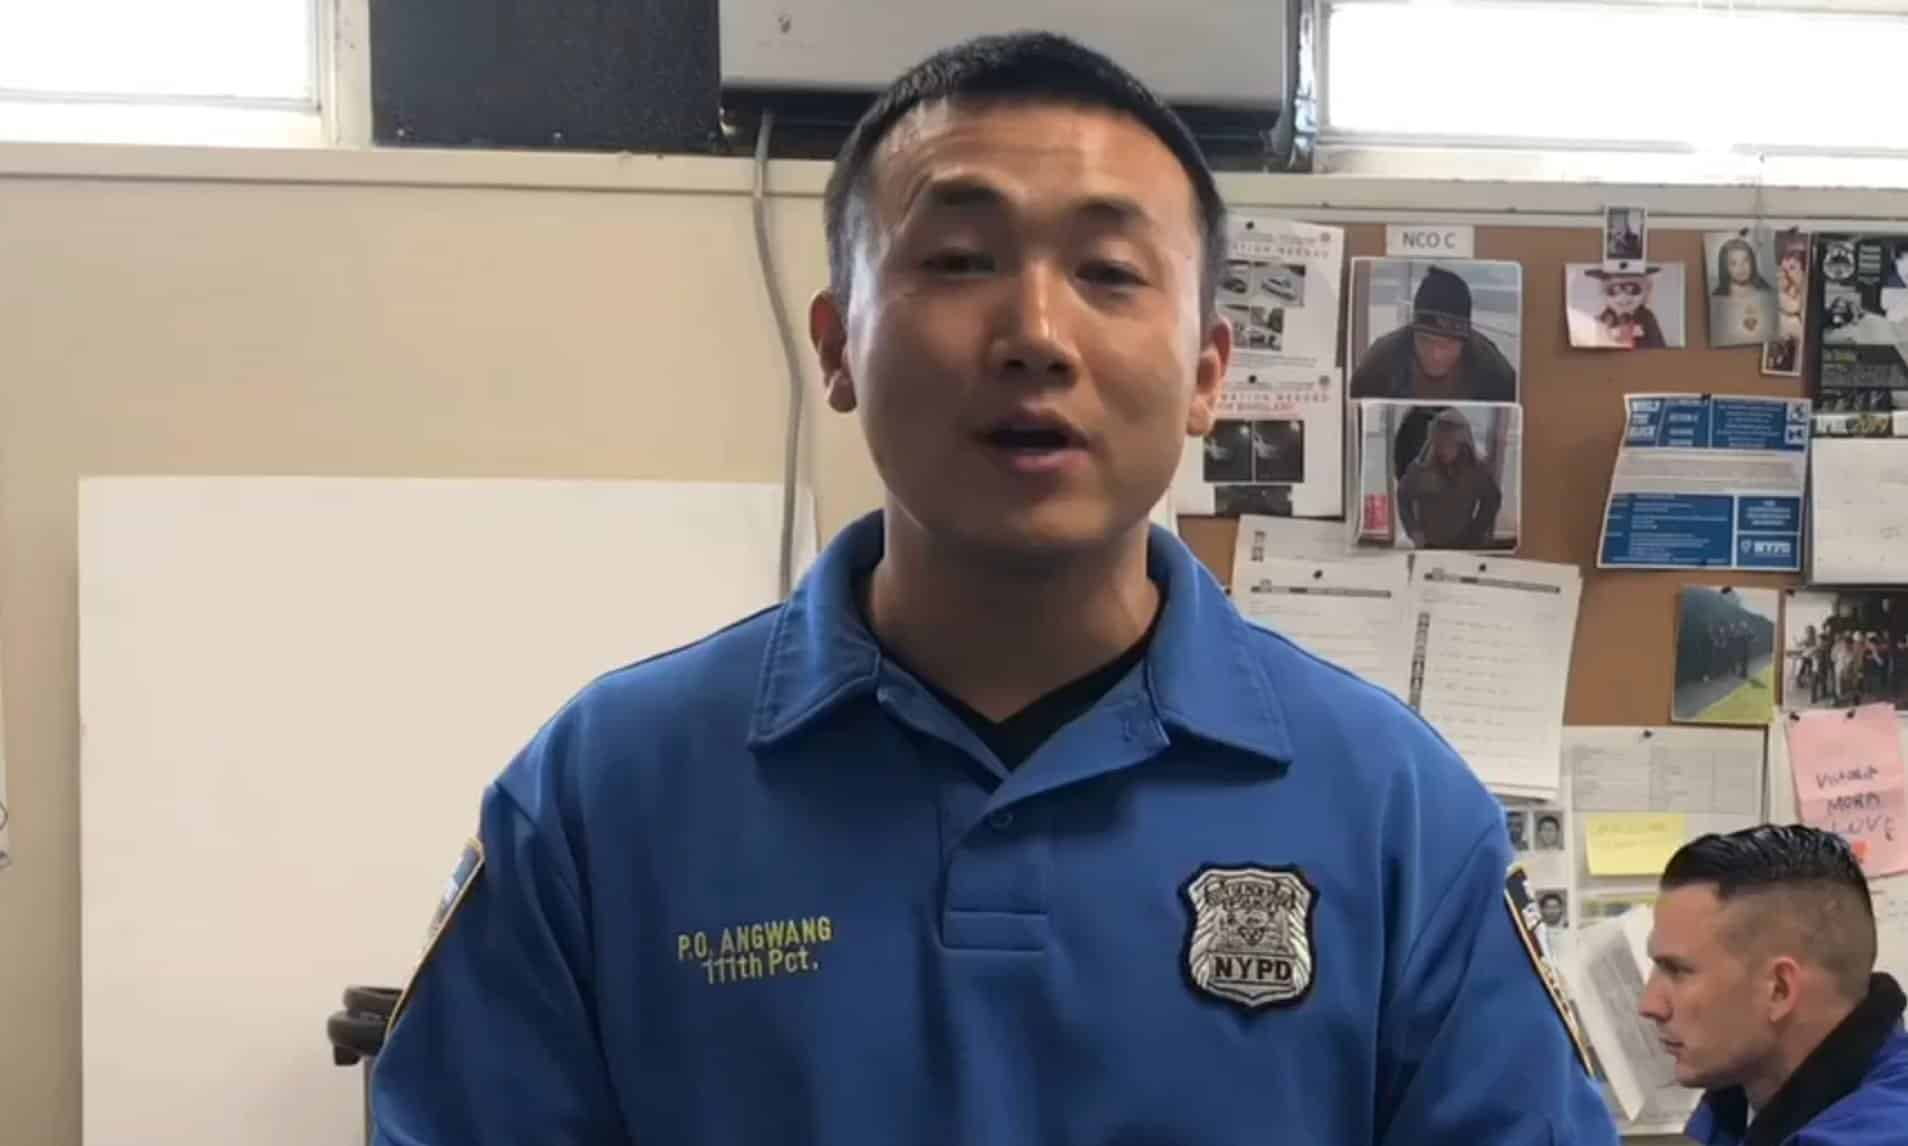 An NYPD officer who worked as an Illegal Chinese agent was caught